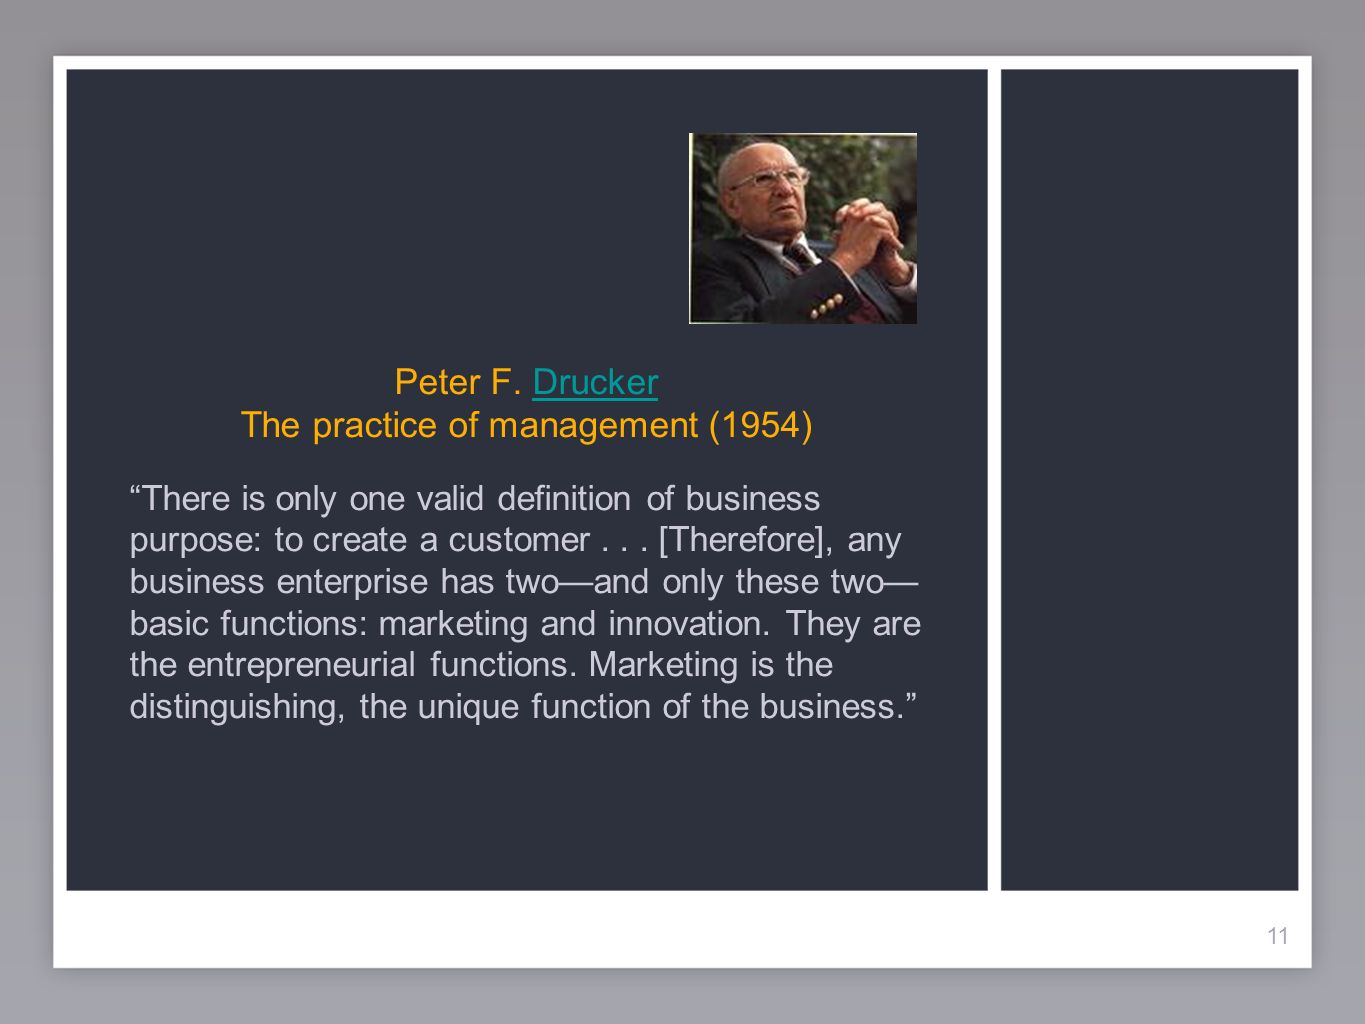 11 Peter F. Drucker The practice of management (1954)Drucker 11 There is only one valid definition of business purpose: to create a customer... [There